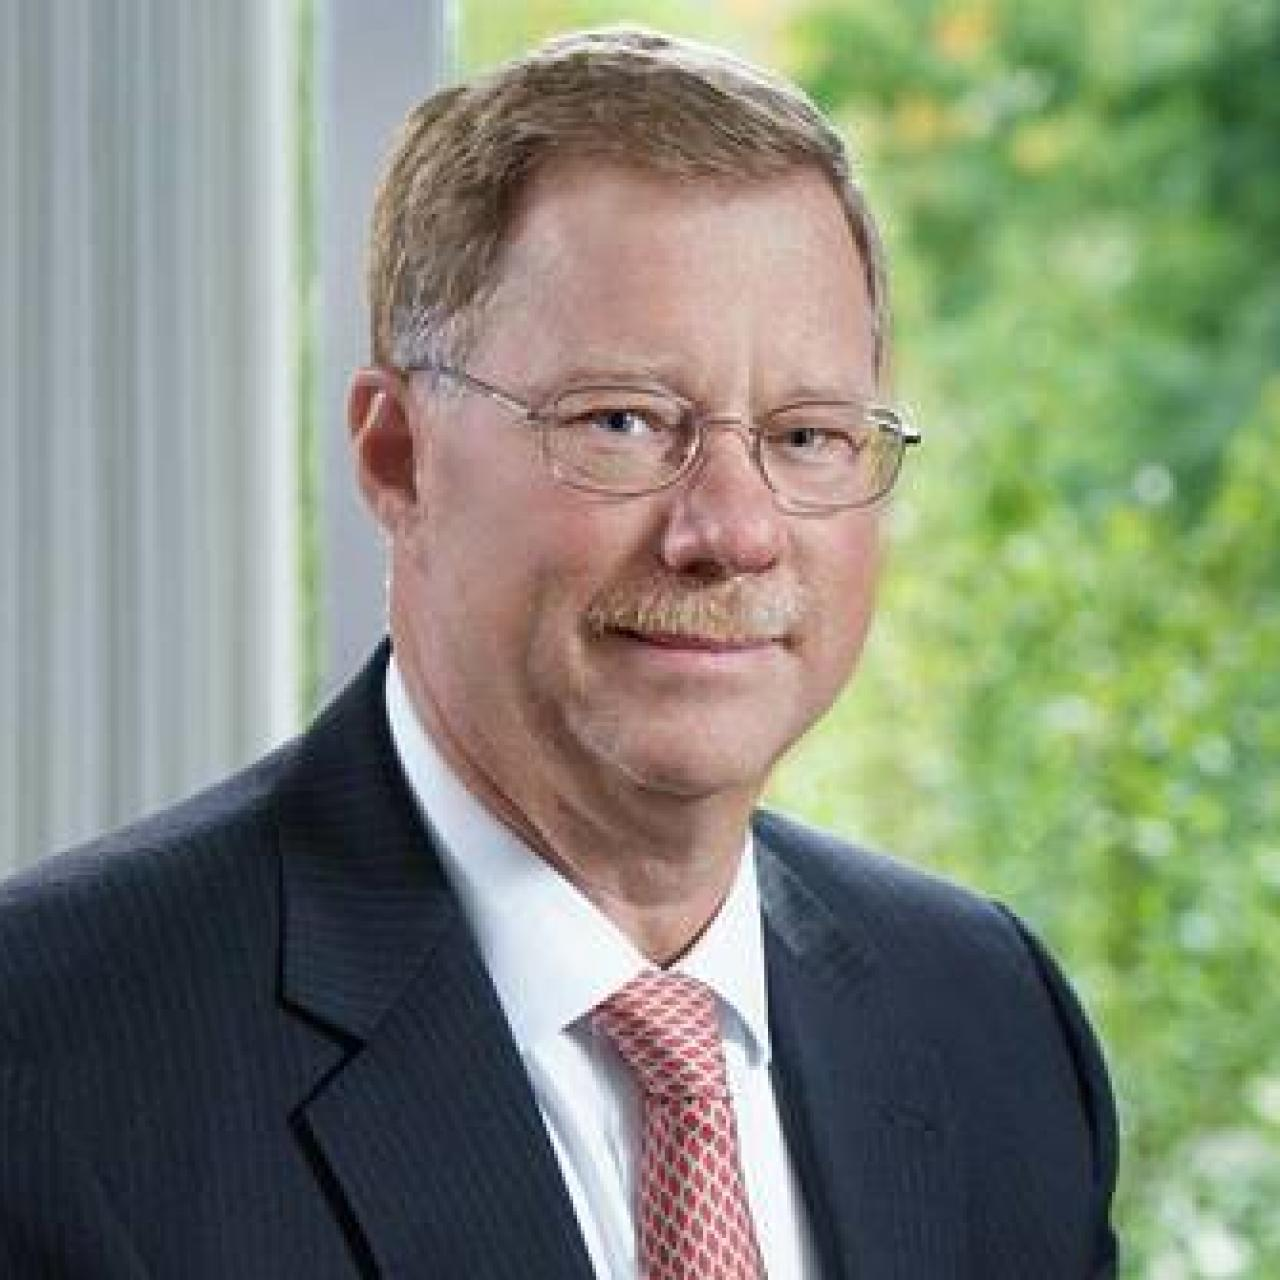 Image of Mark E. Larmore, Vice President for Health Sciences, The Ohio State University